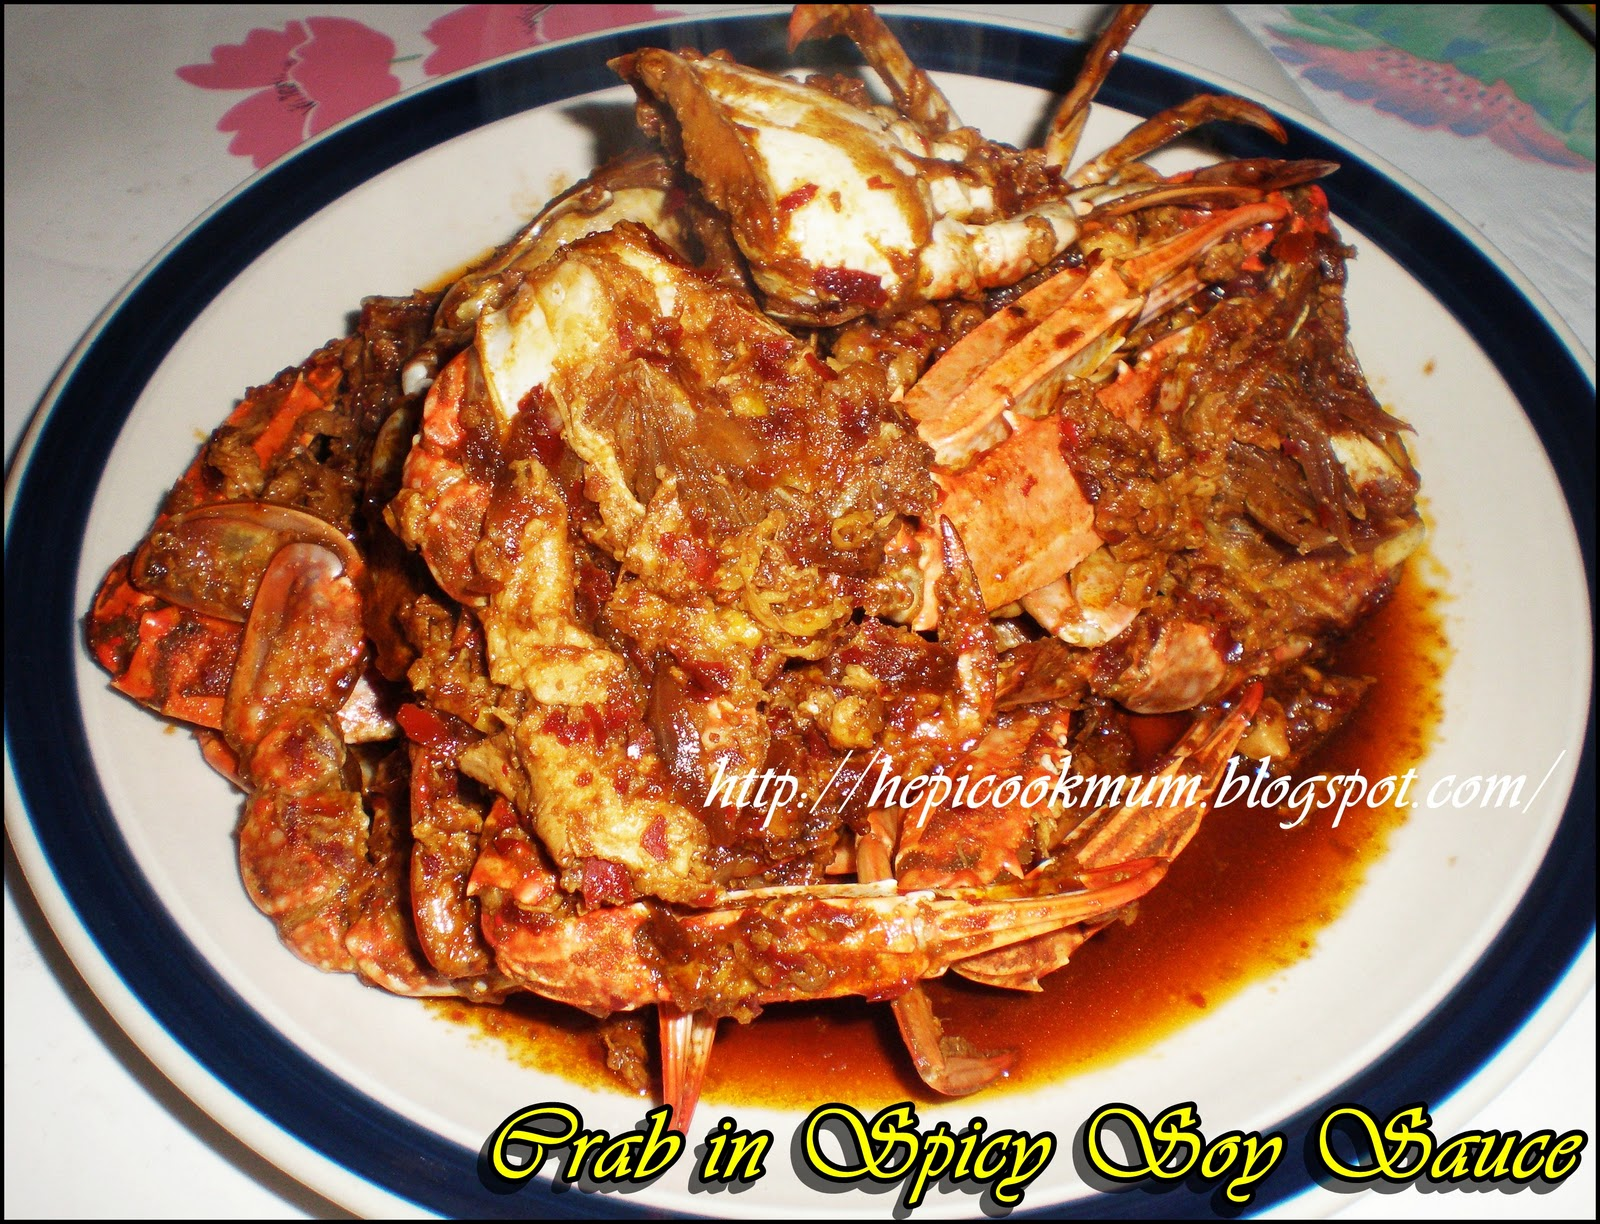 Hepi Cook Mum: Crab in Spicy Soy Sauce